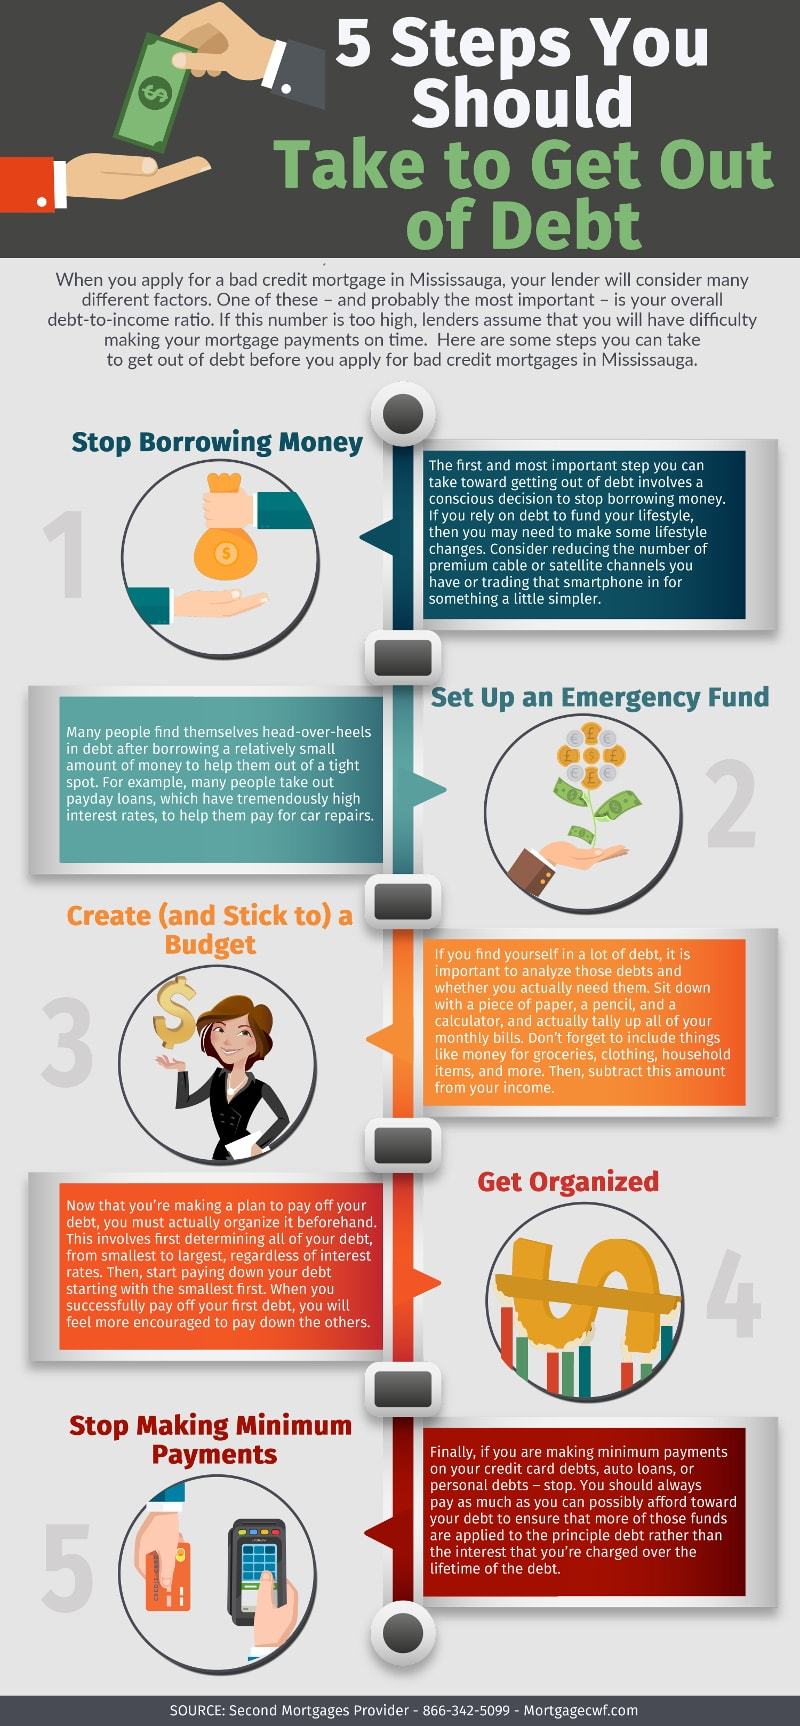 5 Steps You Should Take to Get Out of Debt - Infographic